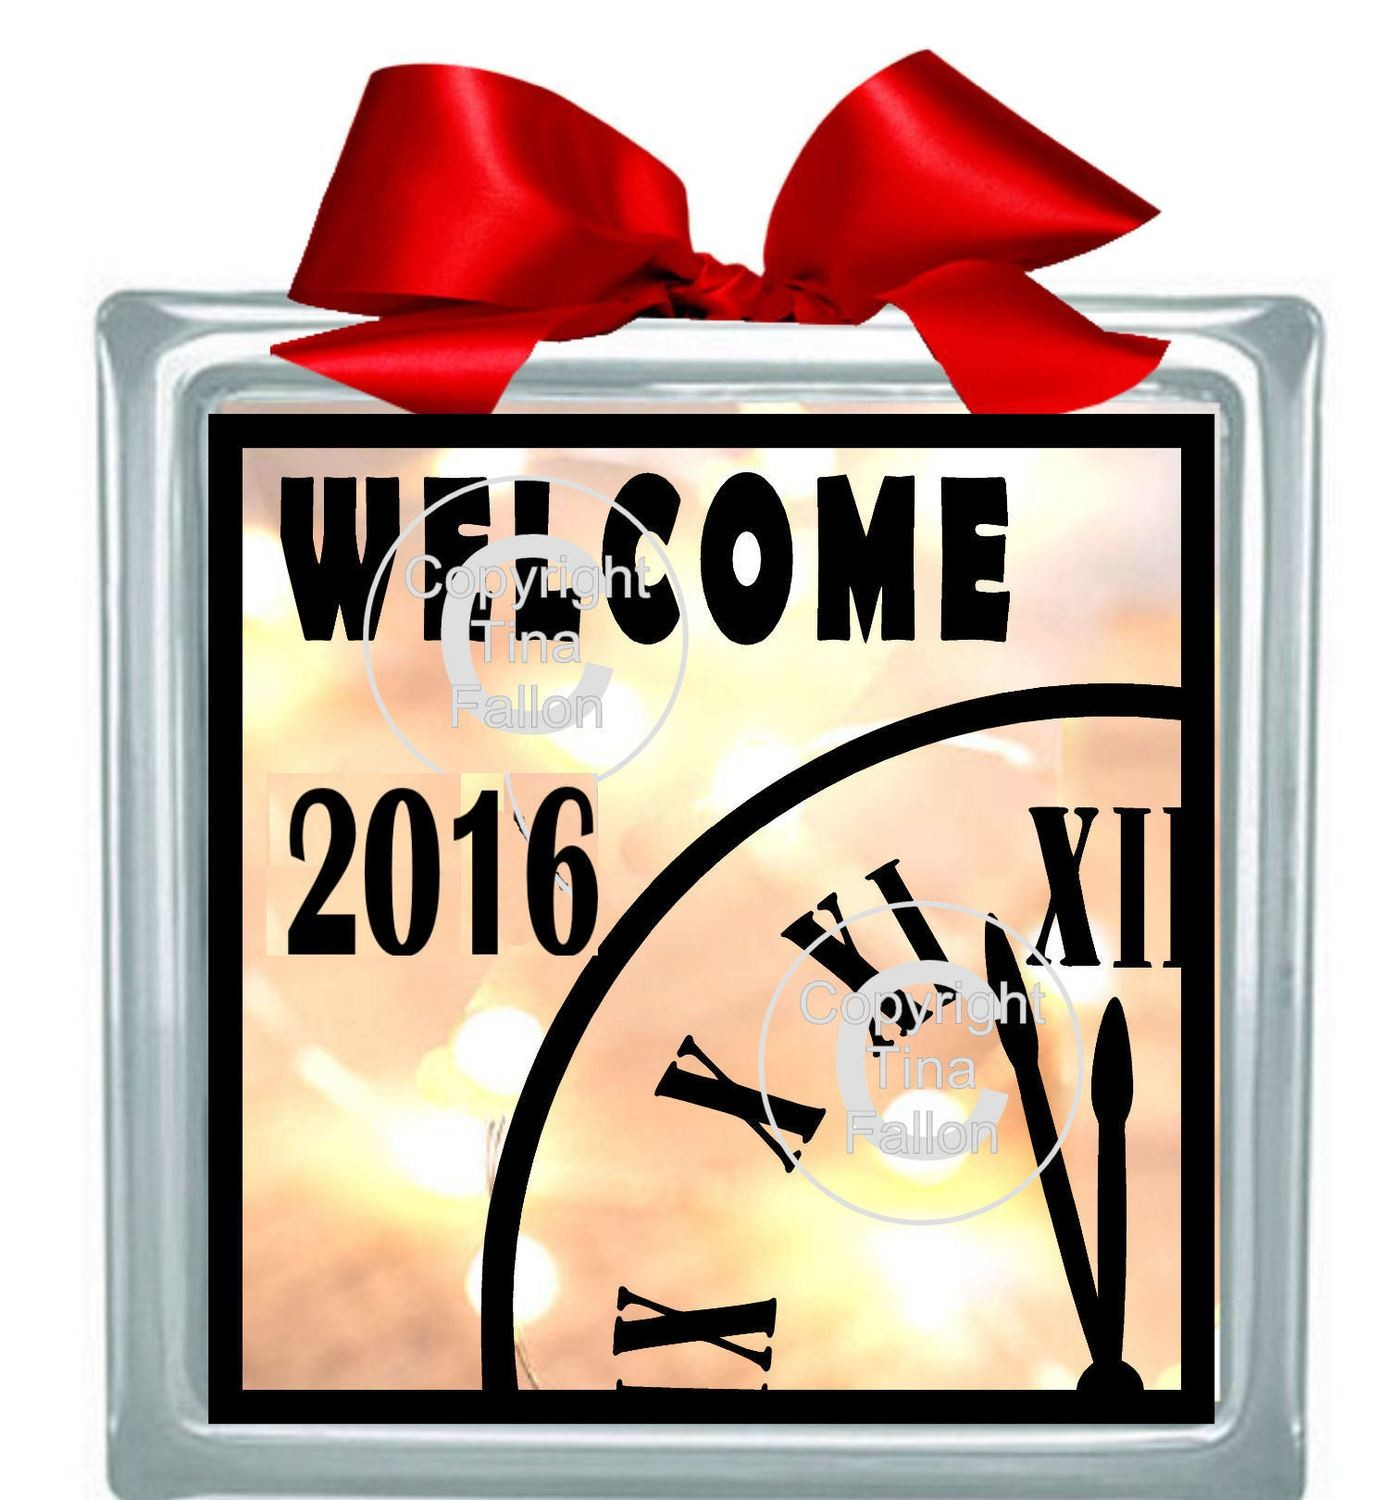 New Year Welcome  2016 Glass Block Tile Design 6x6 inches